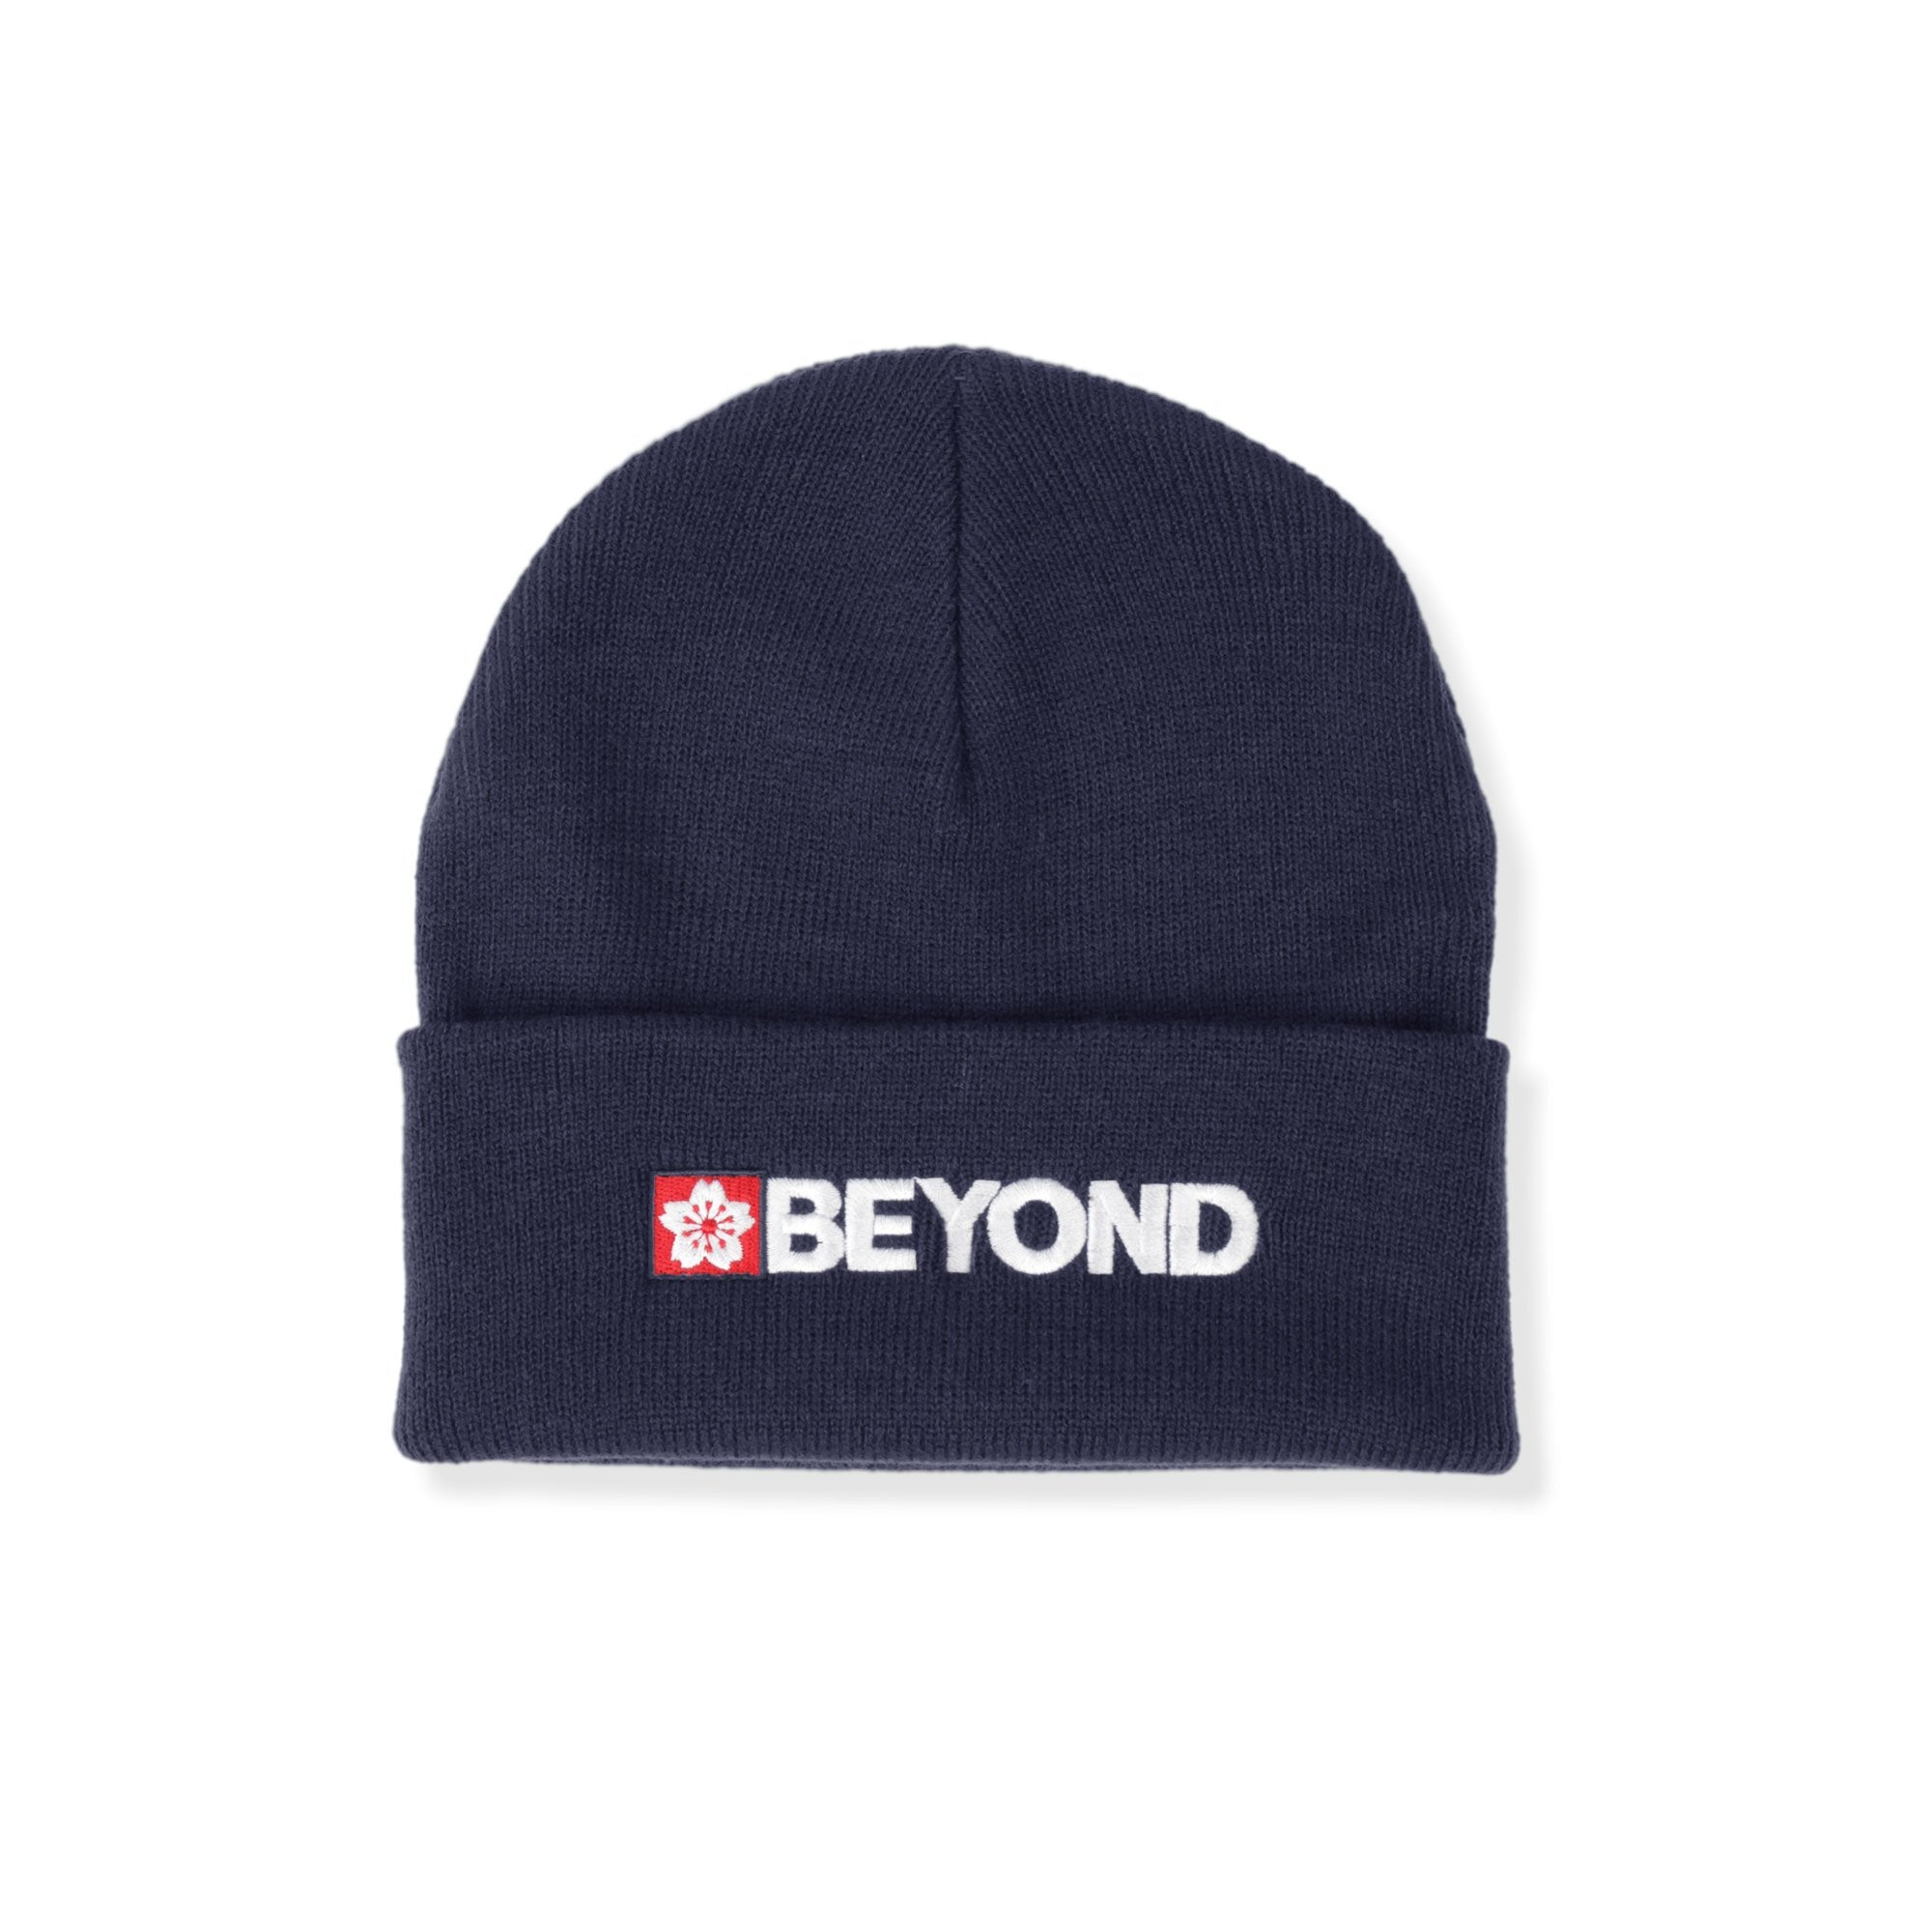 Beyond Solidified Beanie Product Photo #1